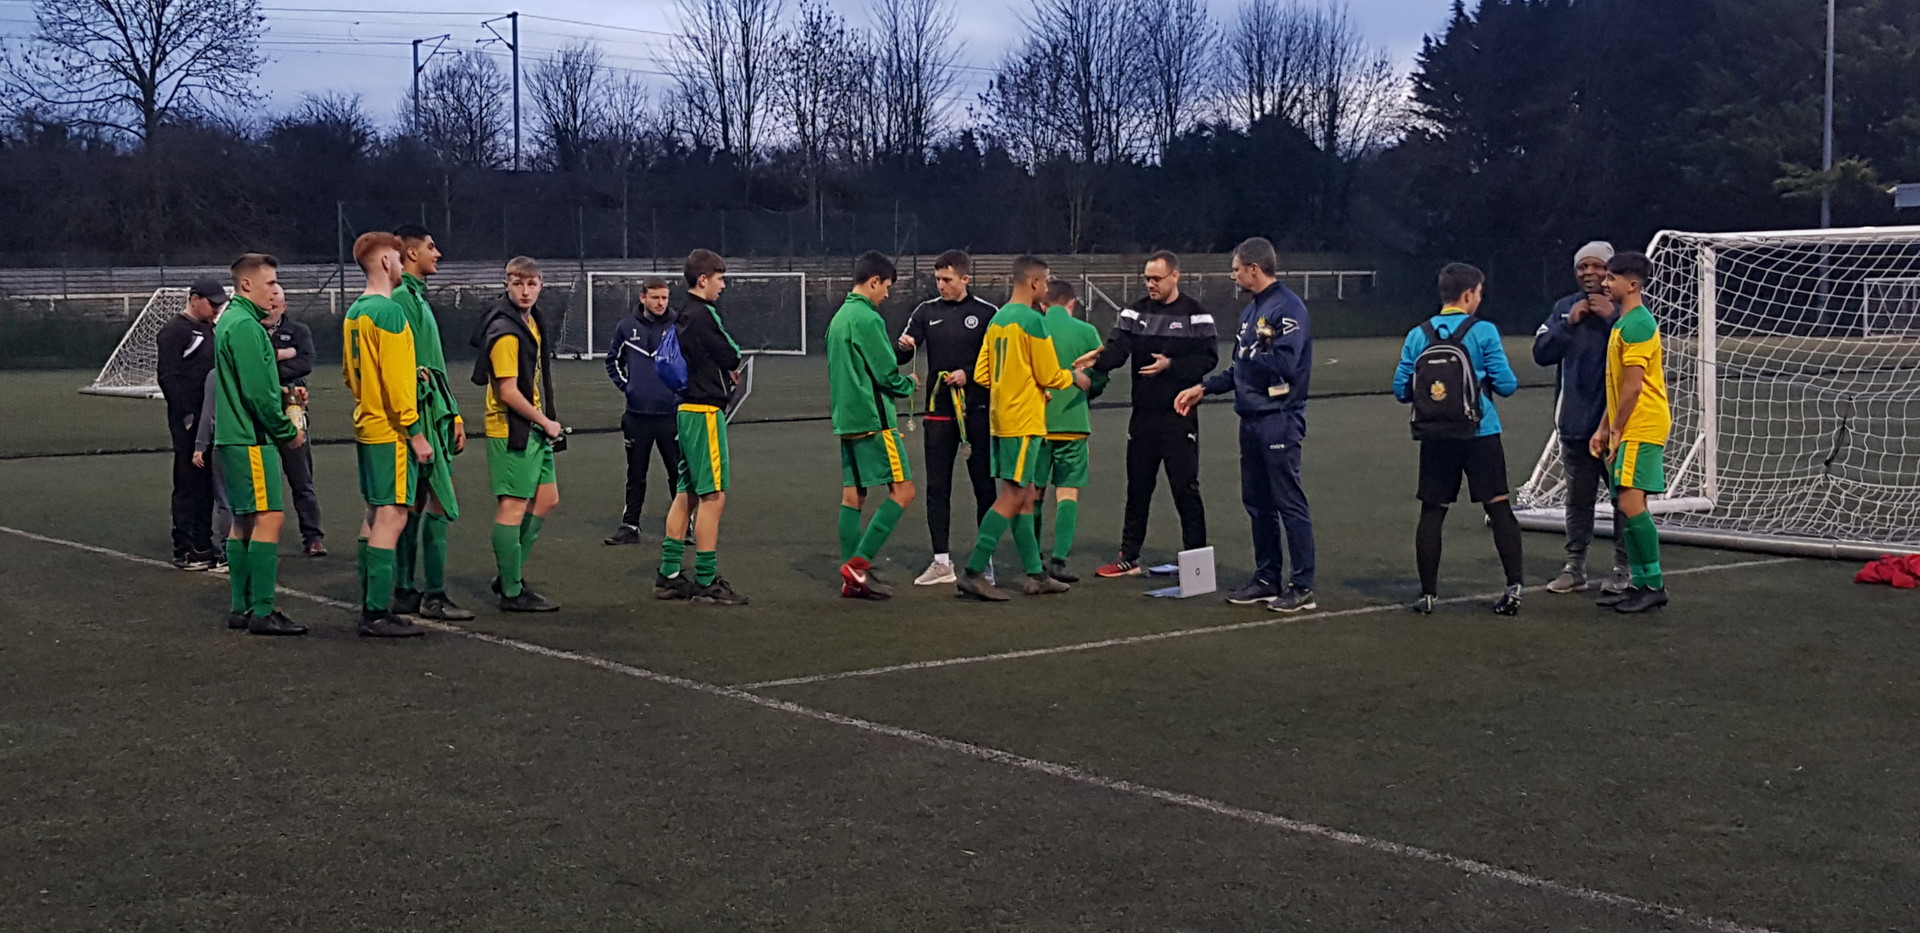 Players are congratulated & awarded medals